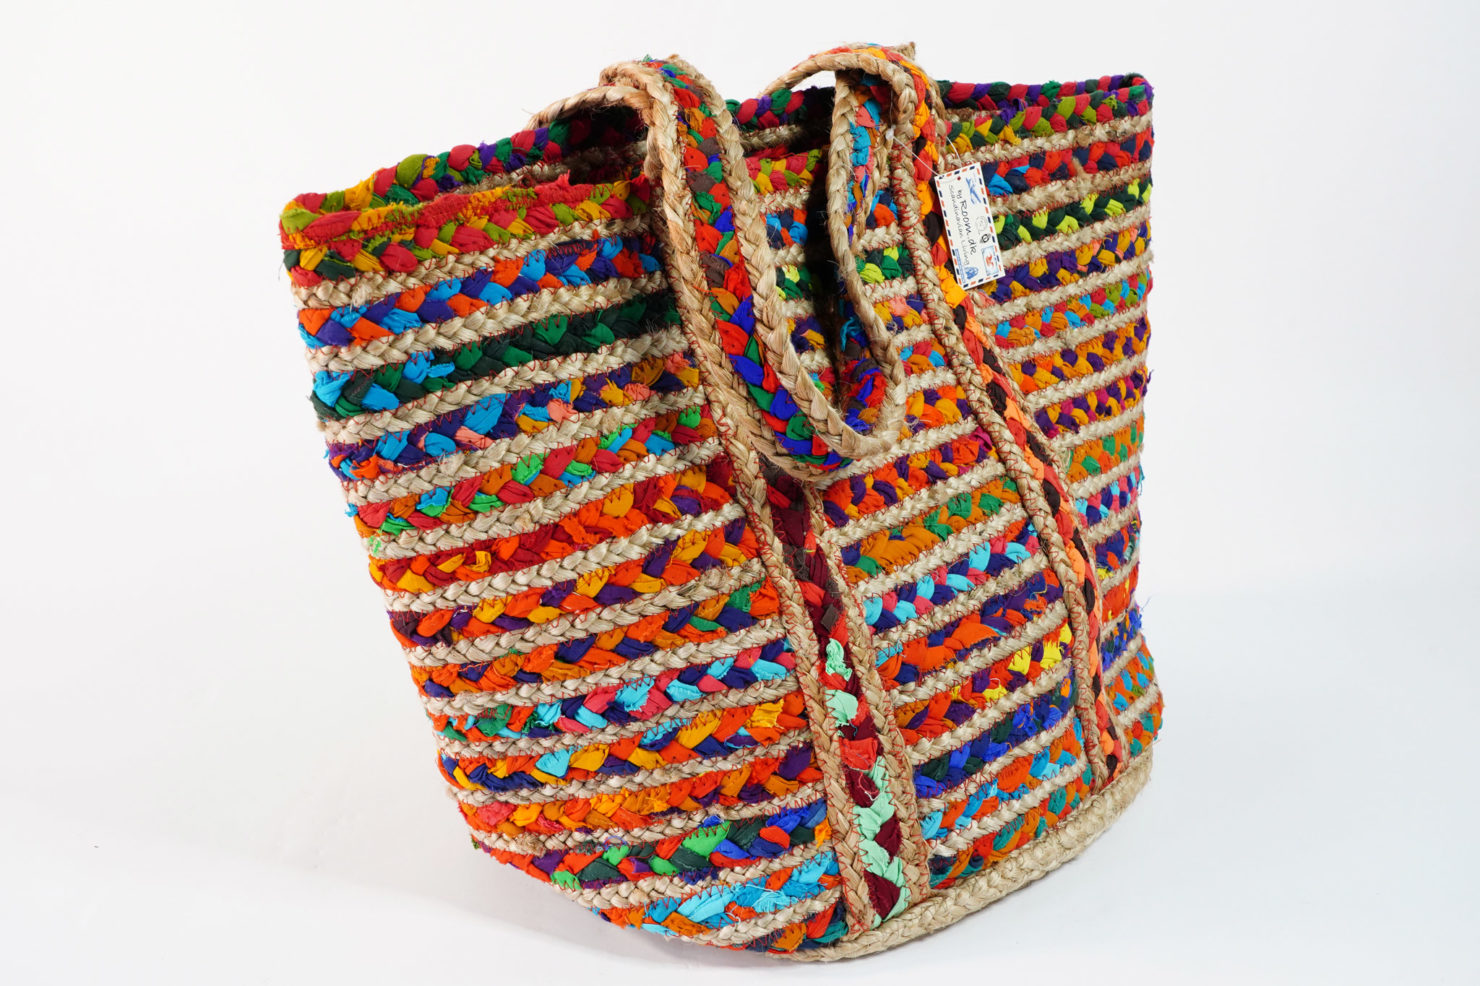 BAG JUTE MULTICOLOR ROUND JUTE AND RECYCLED COTTON 48X28 CM- BY ROOM